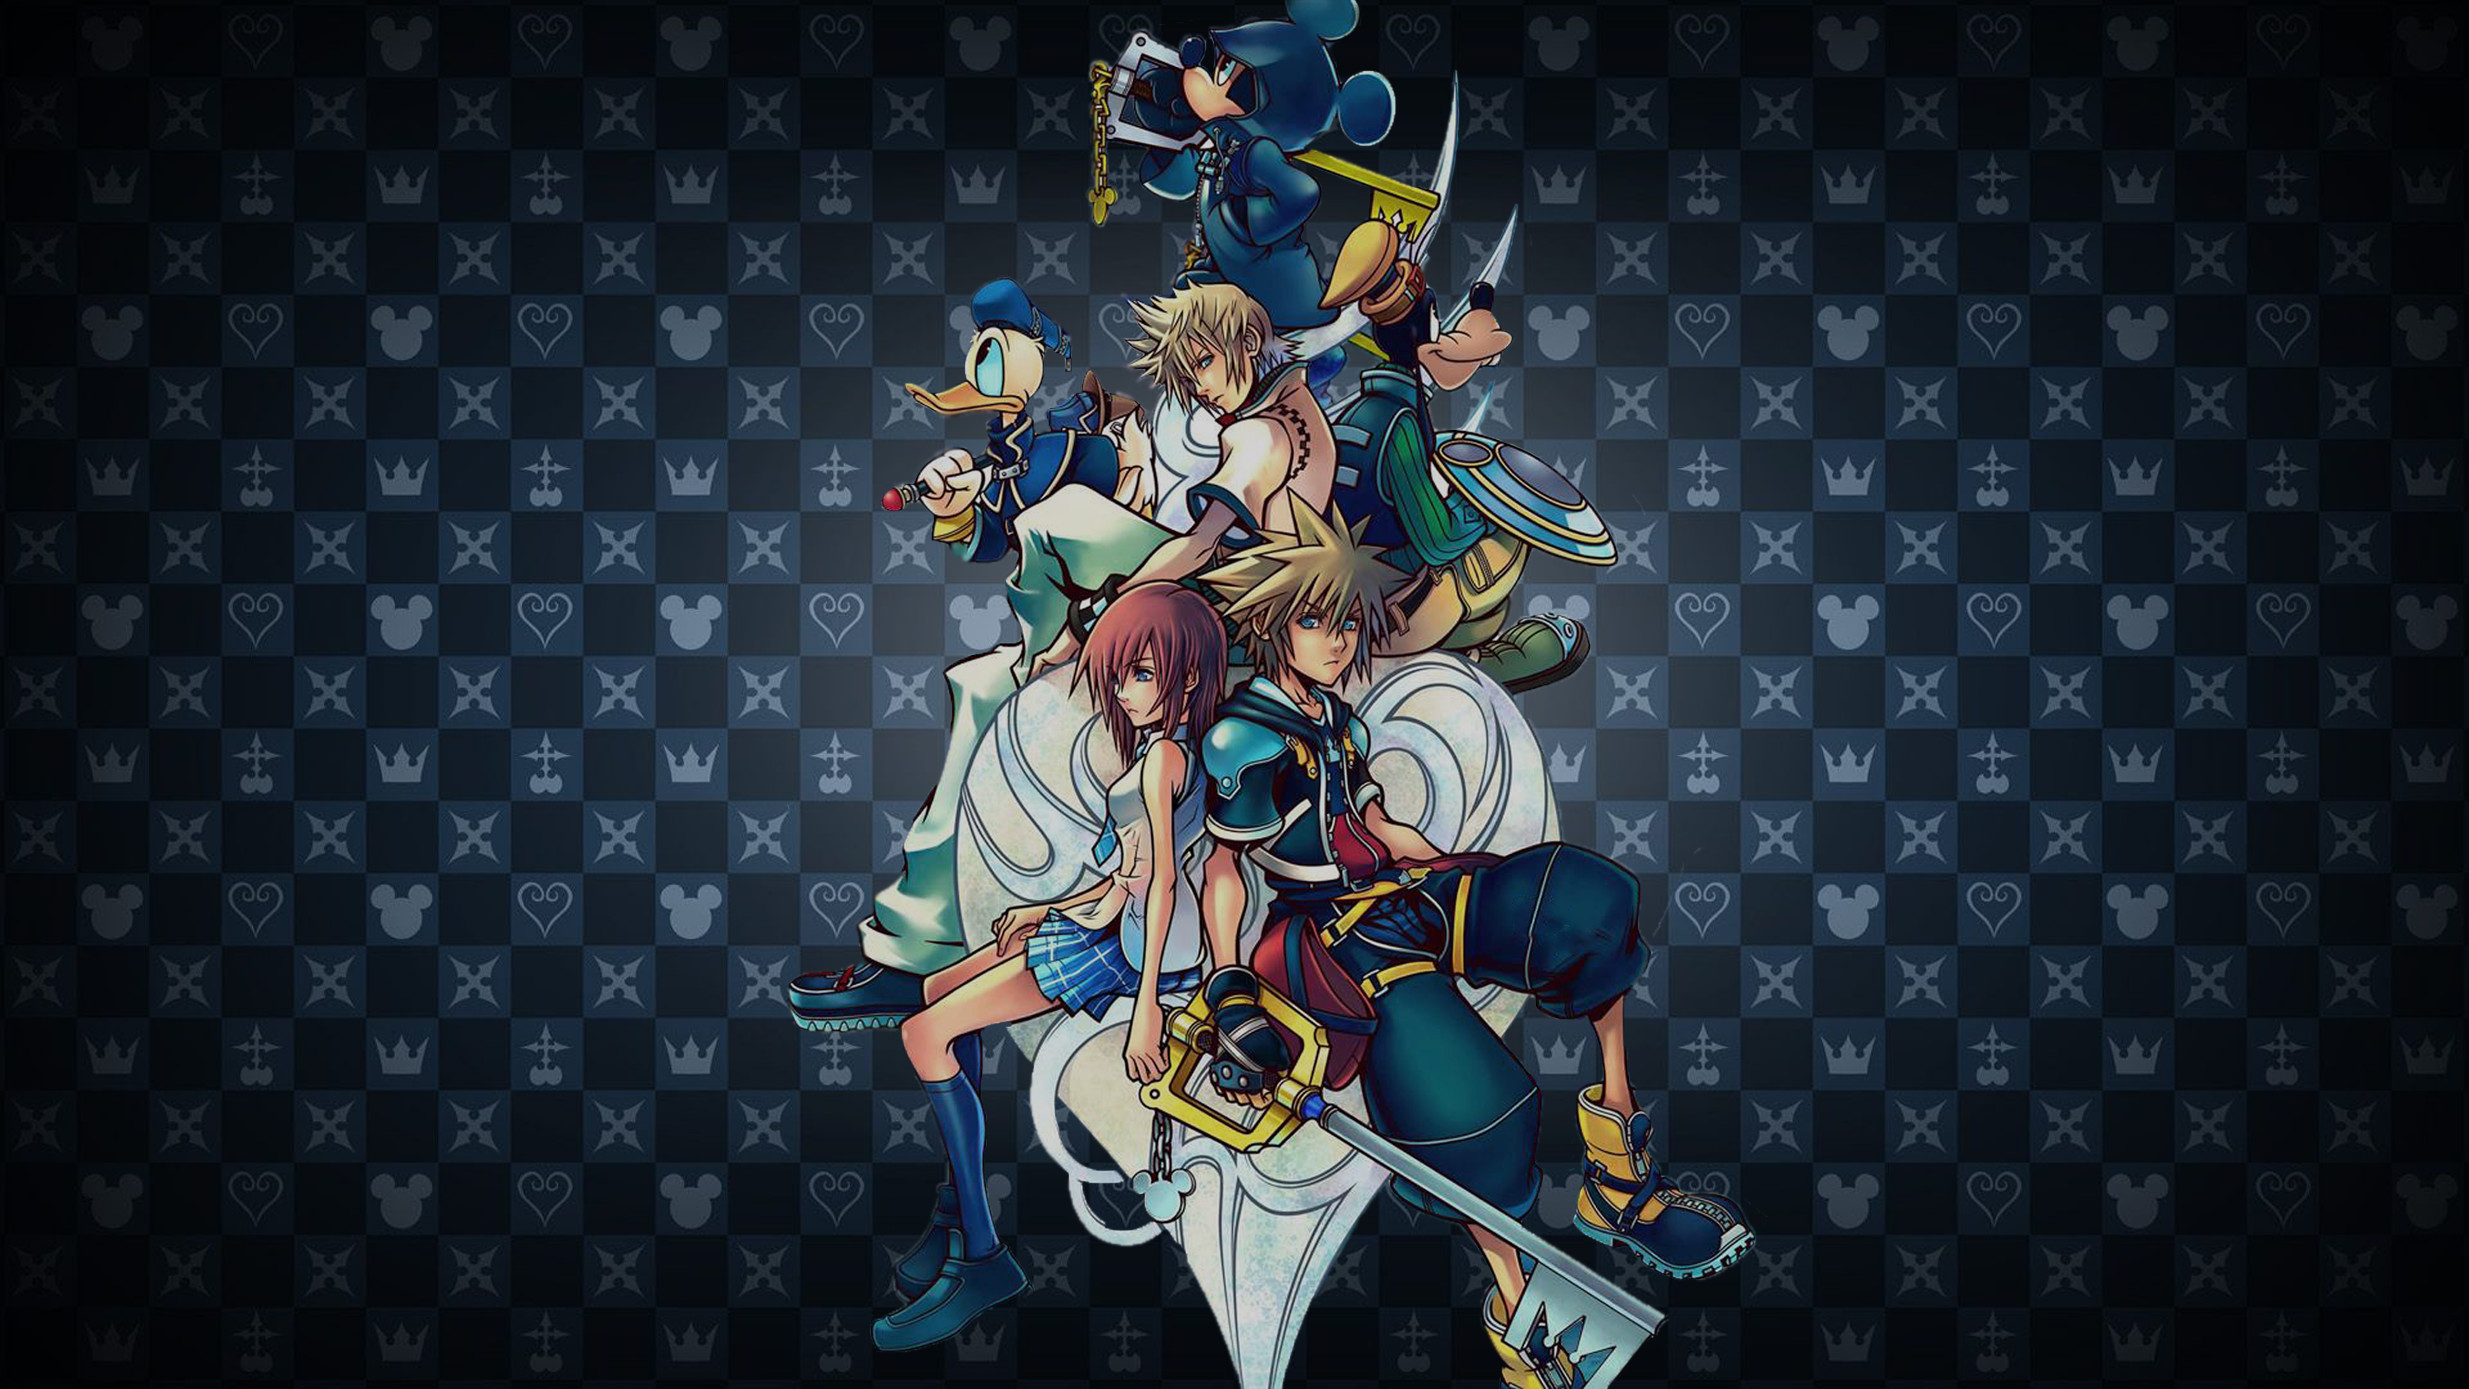 Res: 2469x1389, Kingdom Hearts Wallpaper 39 Kingdom Hearts Gallery of